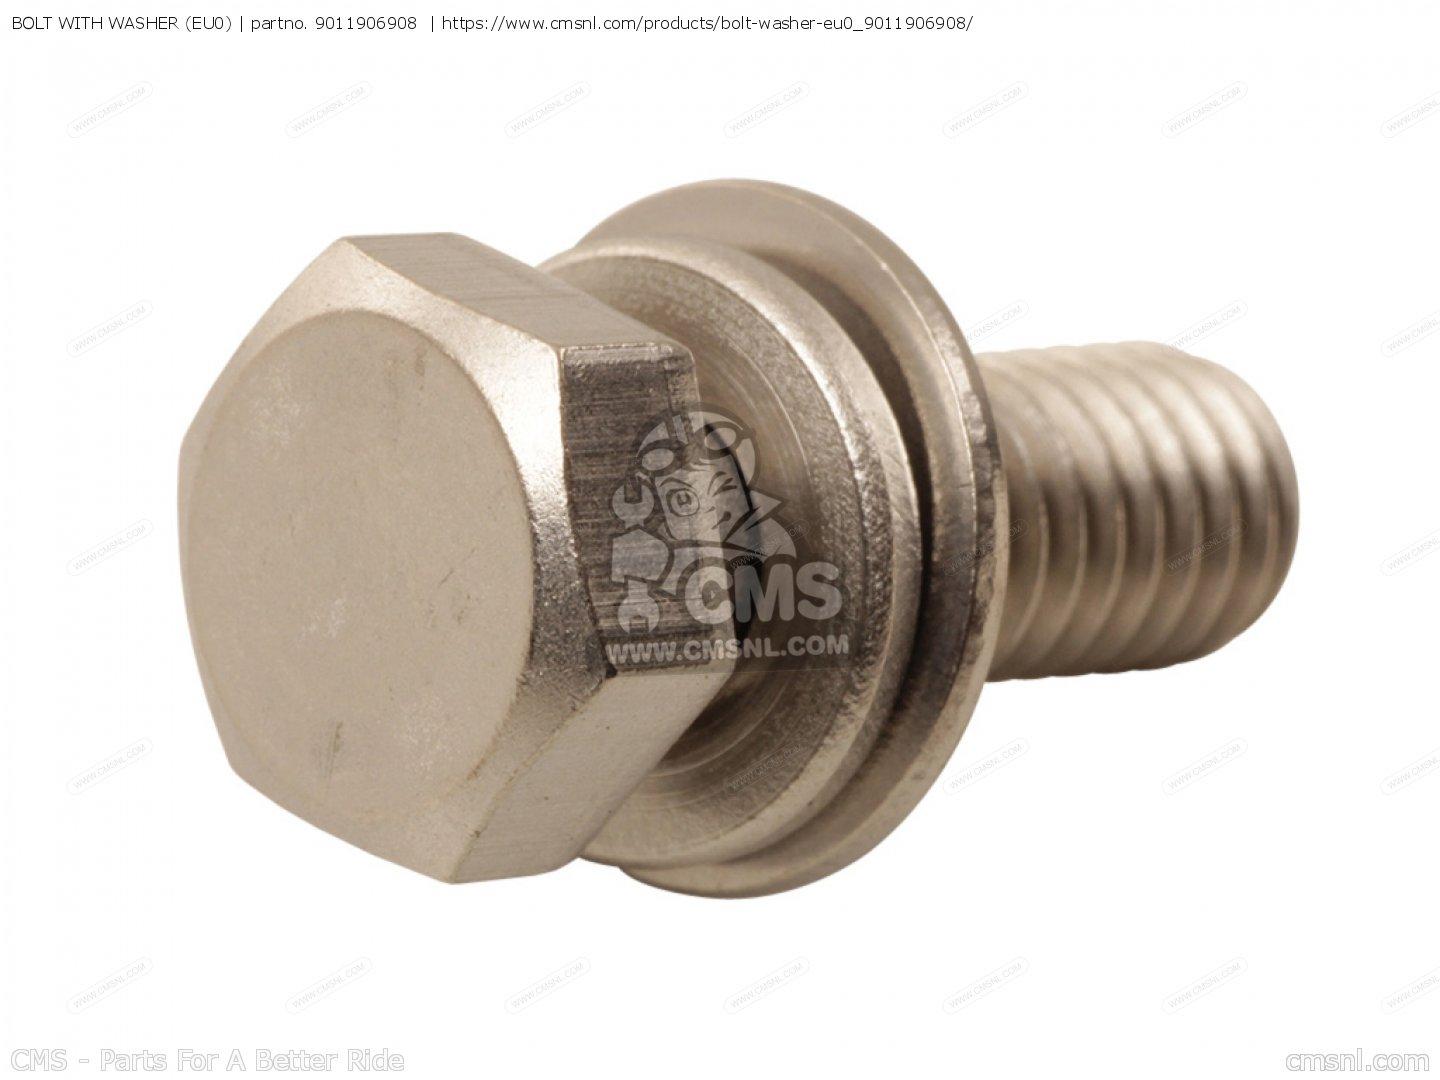 Bolt And Washer >> Bolt With Washer Eu0